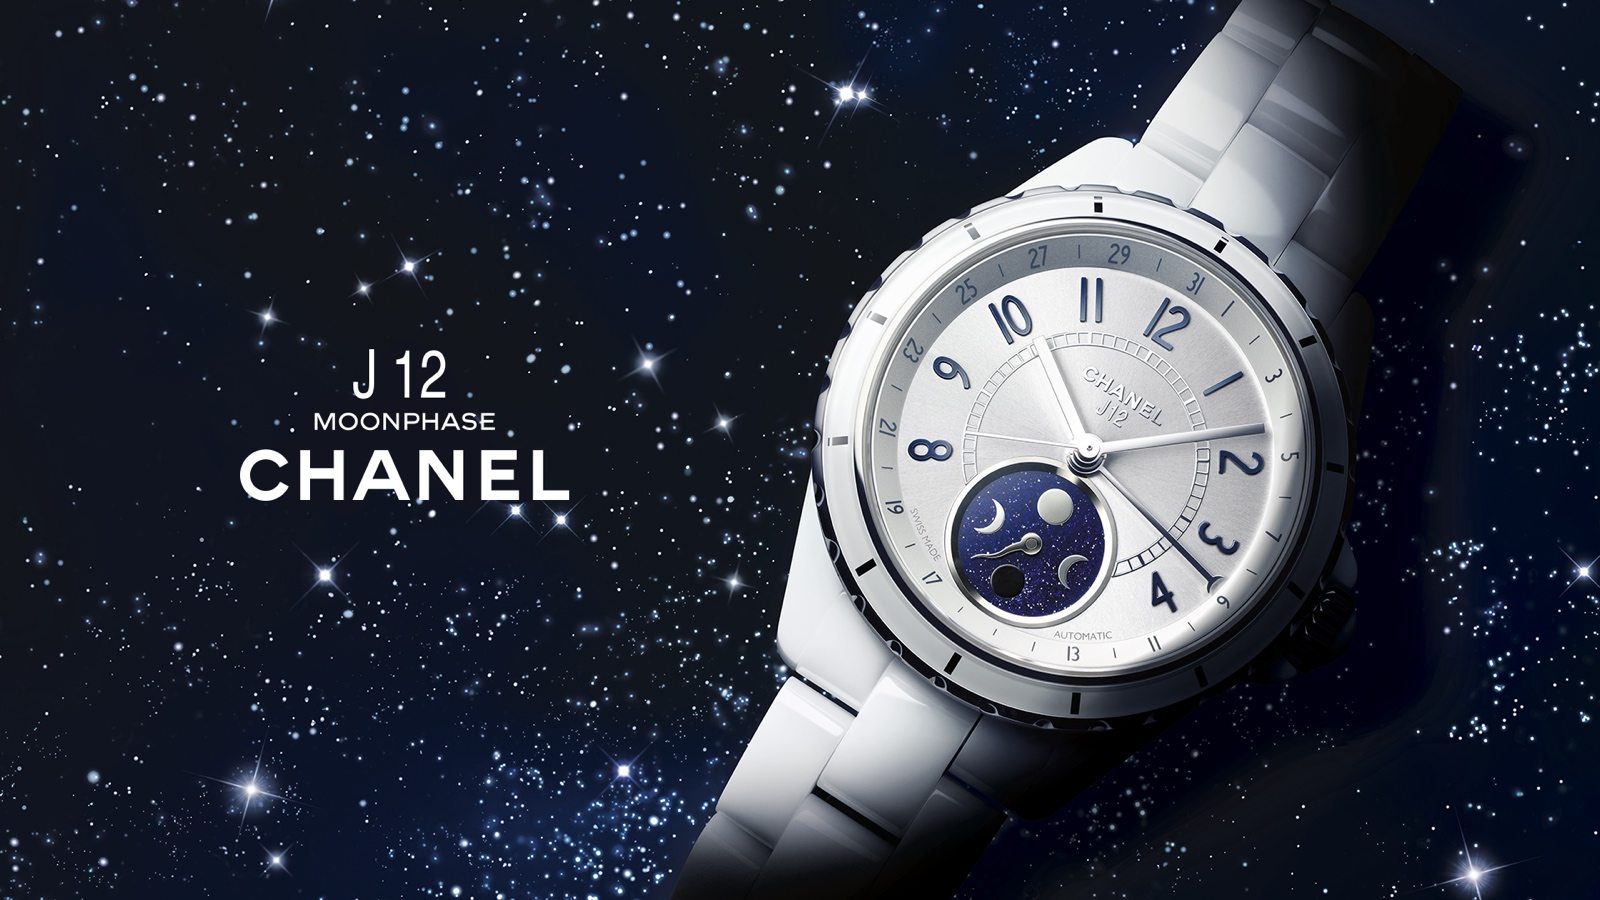 Chanel J12 Moonphase